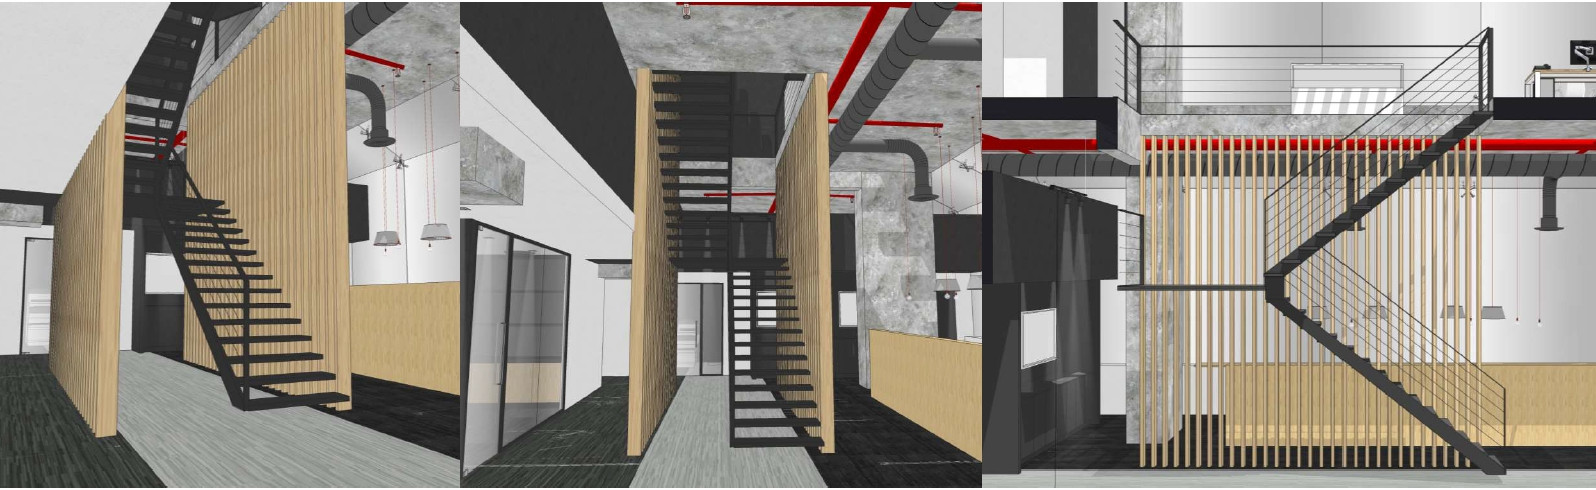 Feature Staircase Brief - Copy.jpg